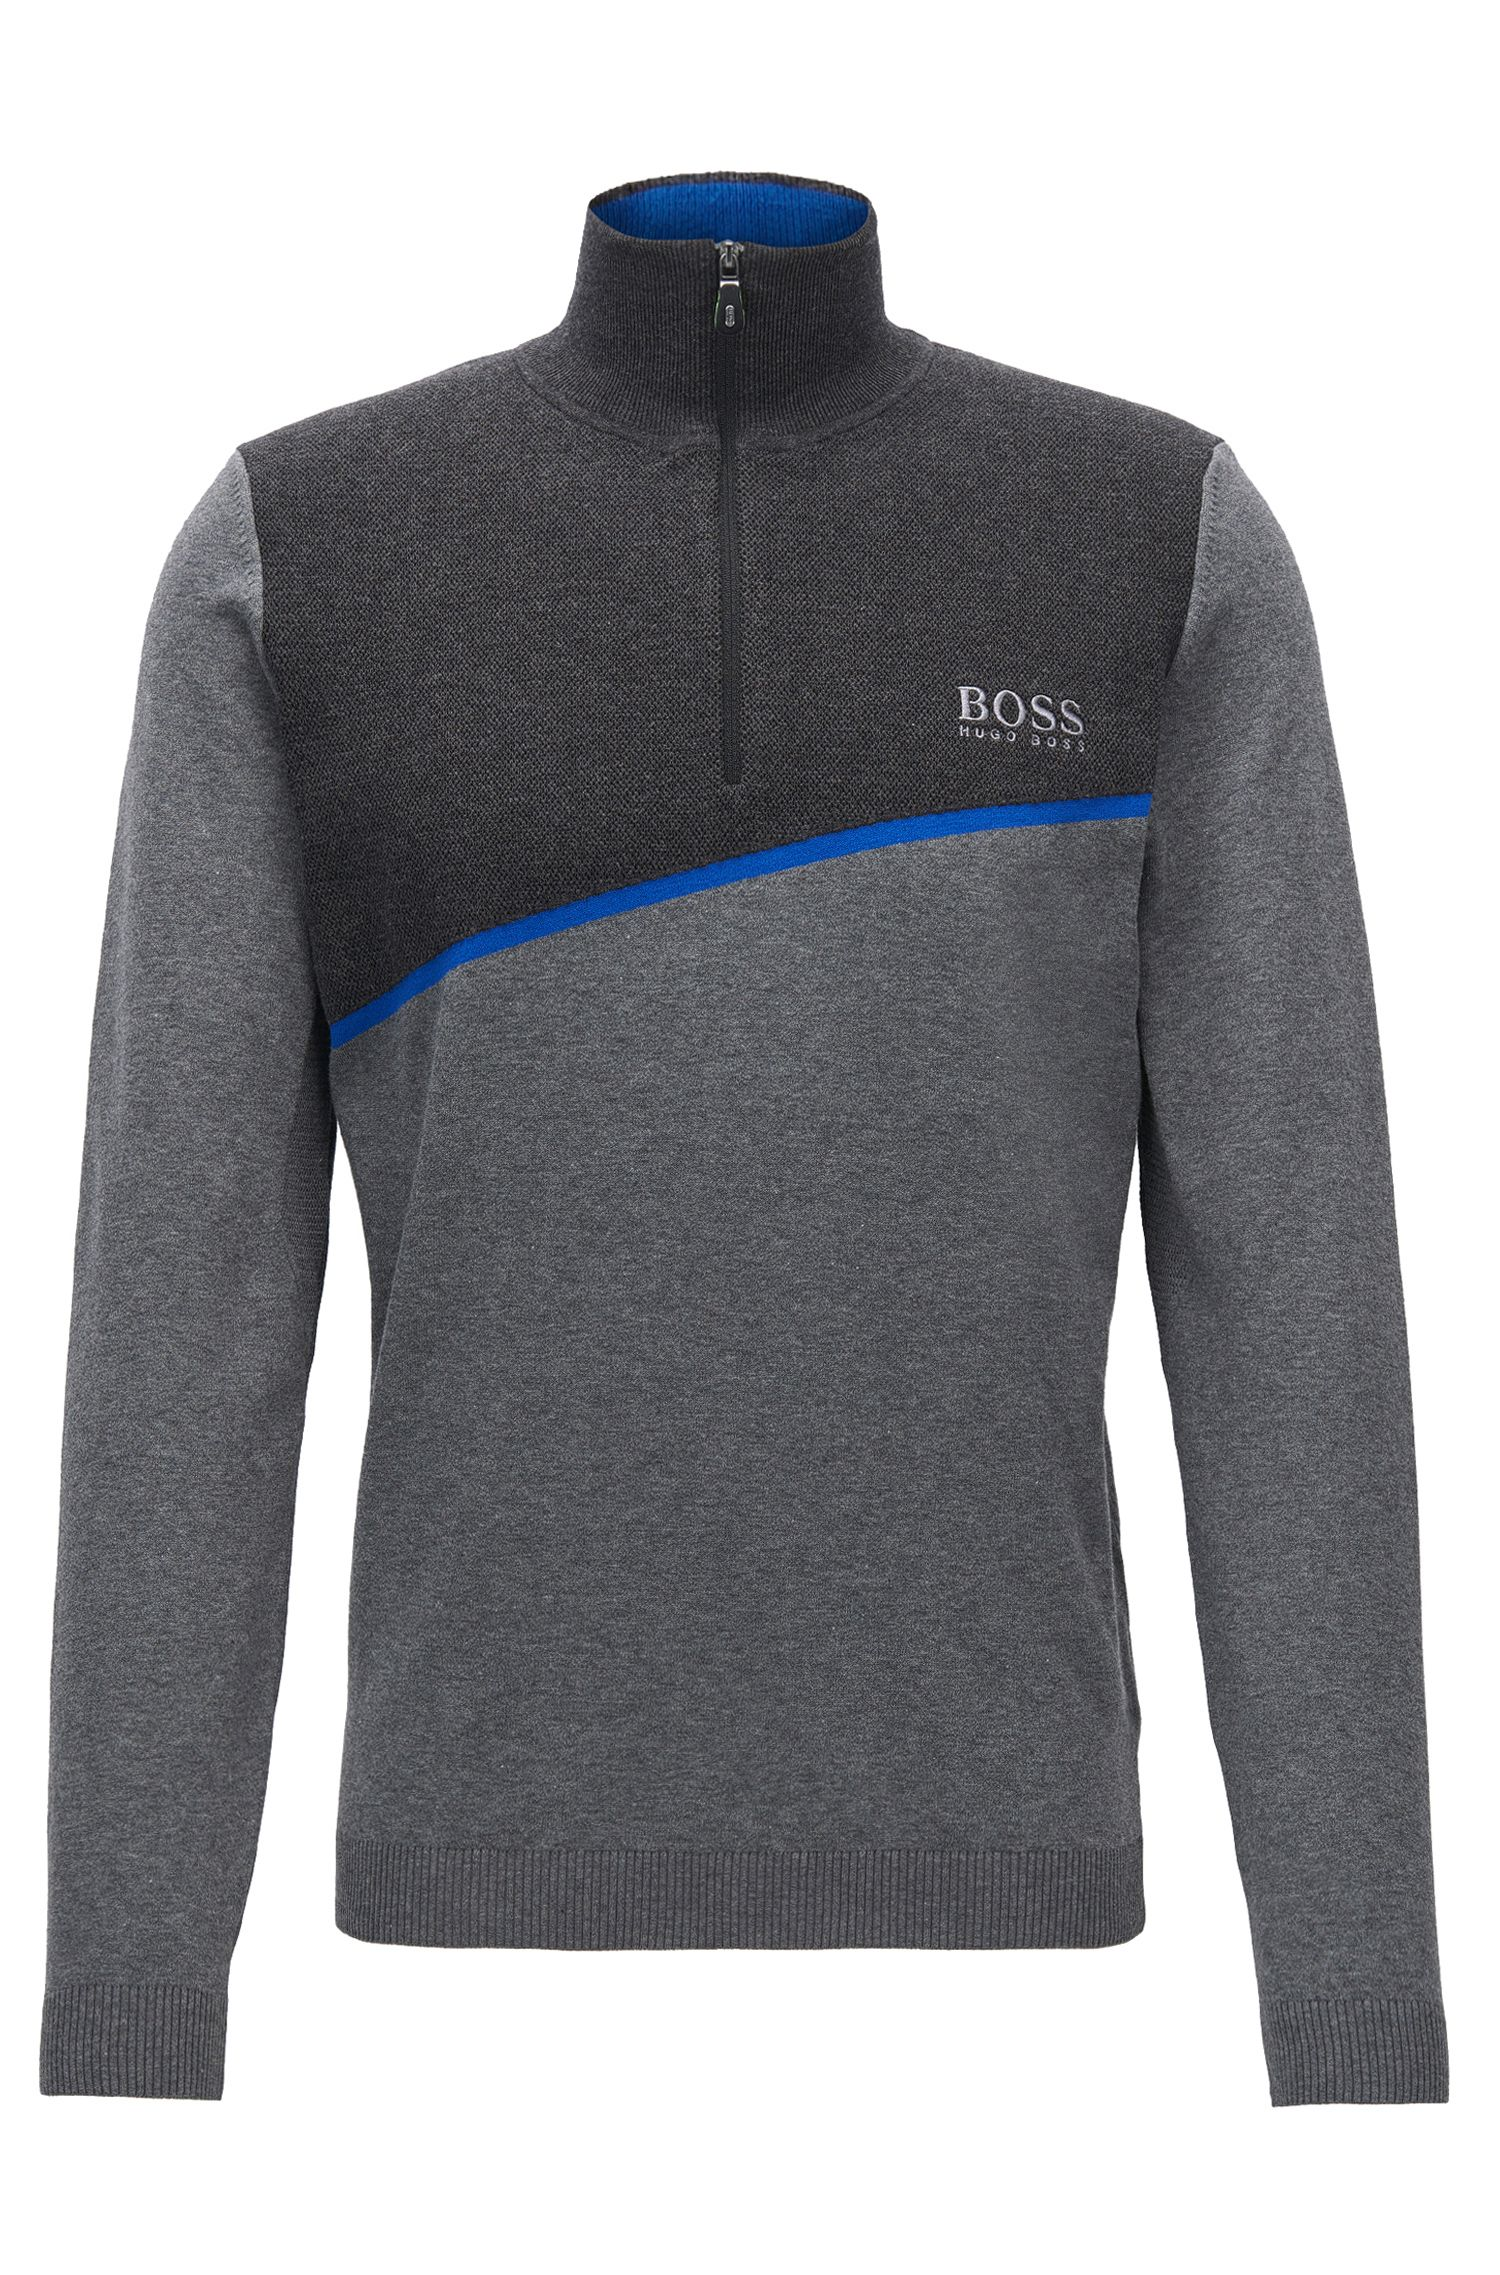 'Zymor Pro' | Colorblocked Stretch Cotton Sweater